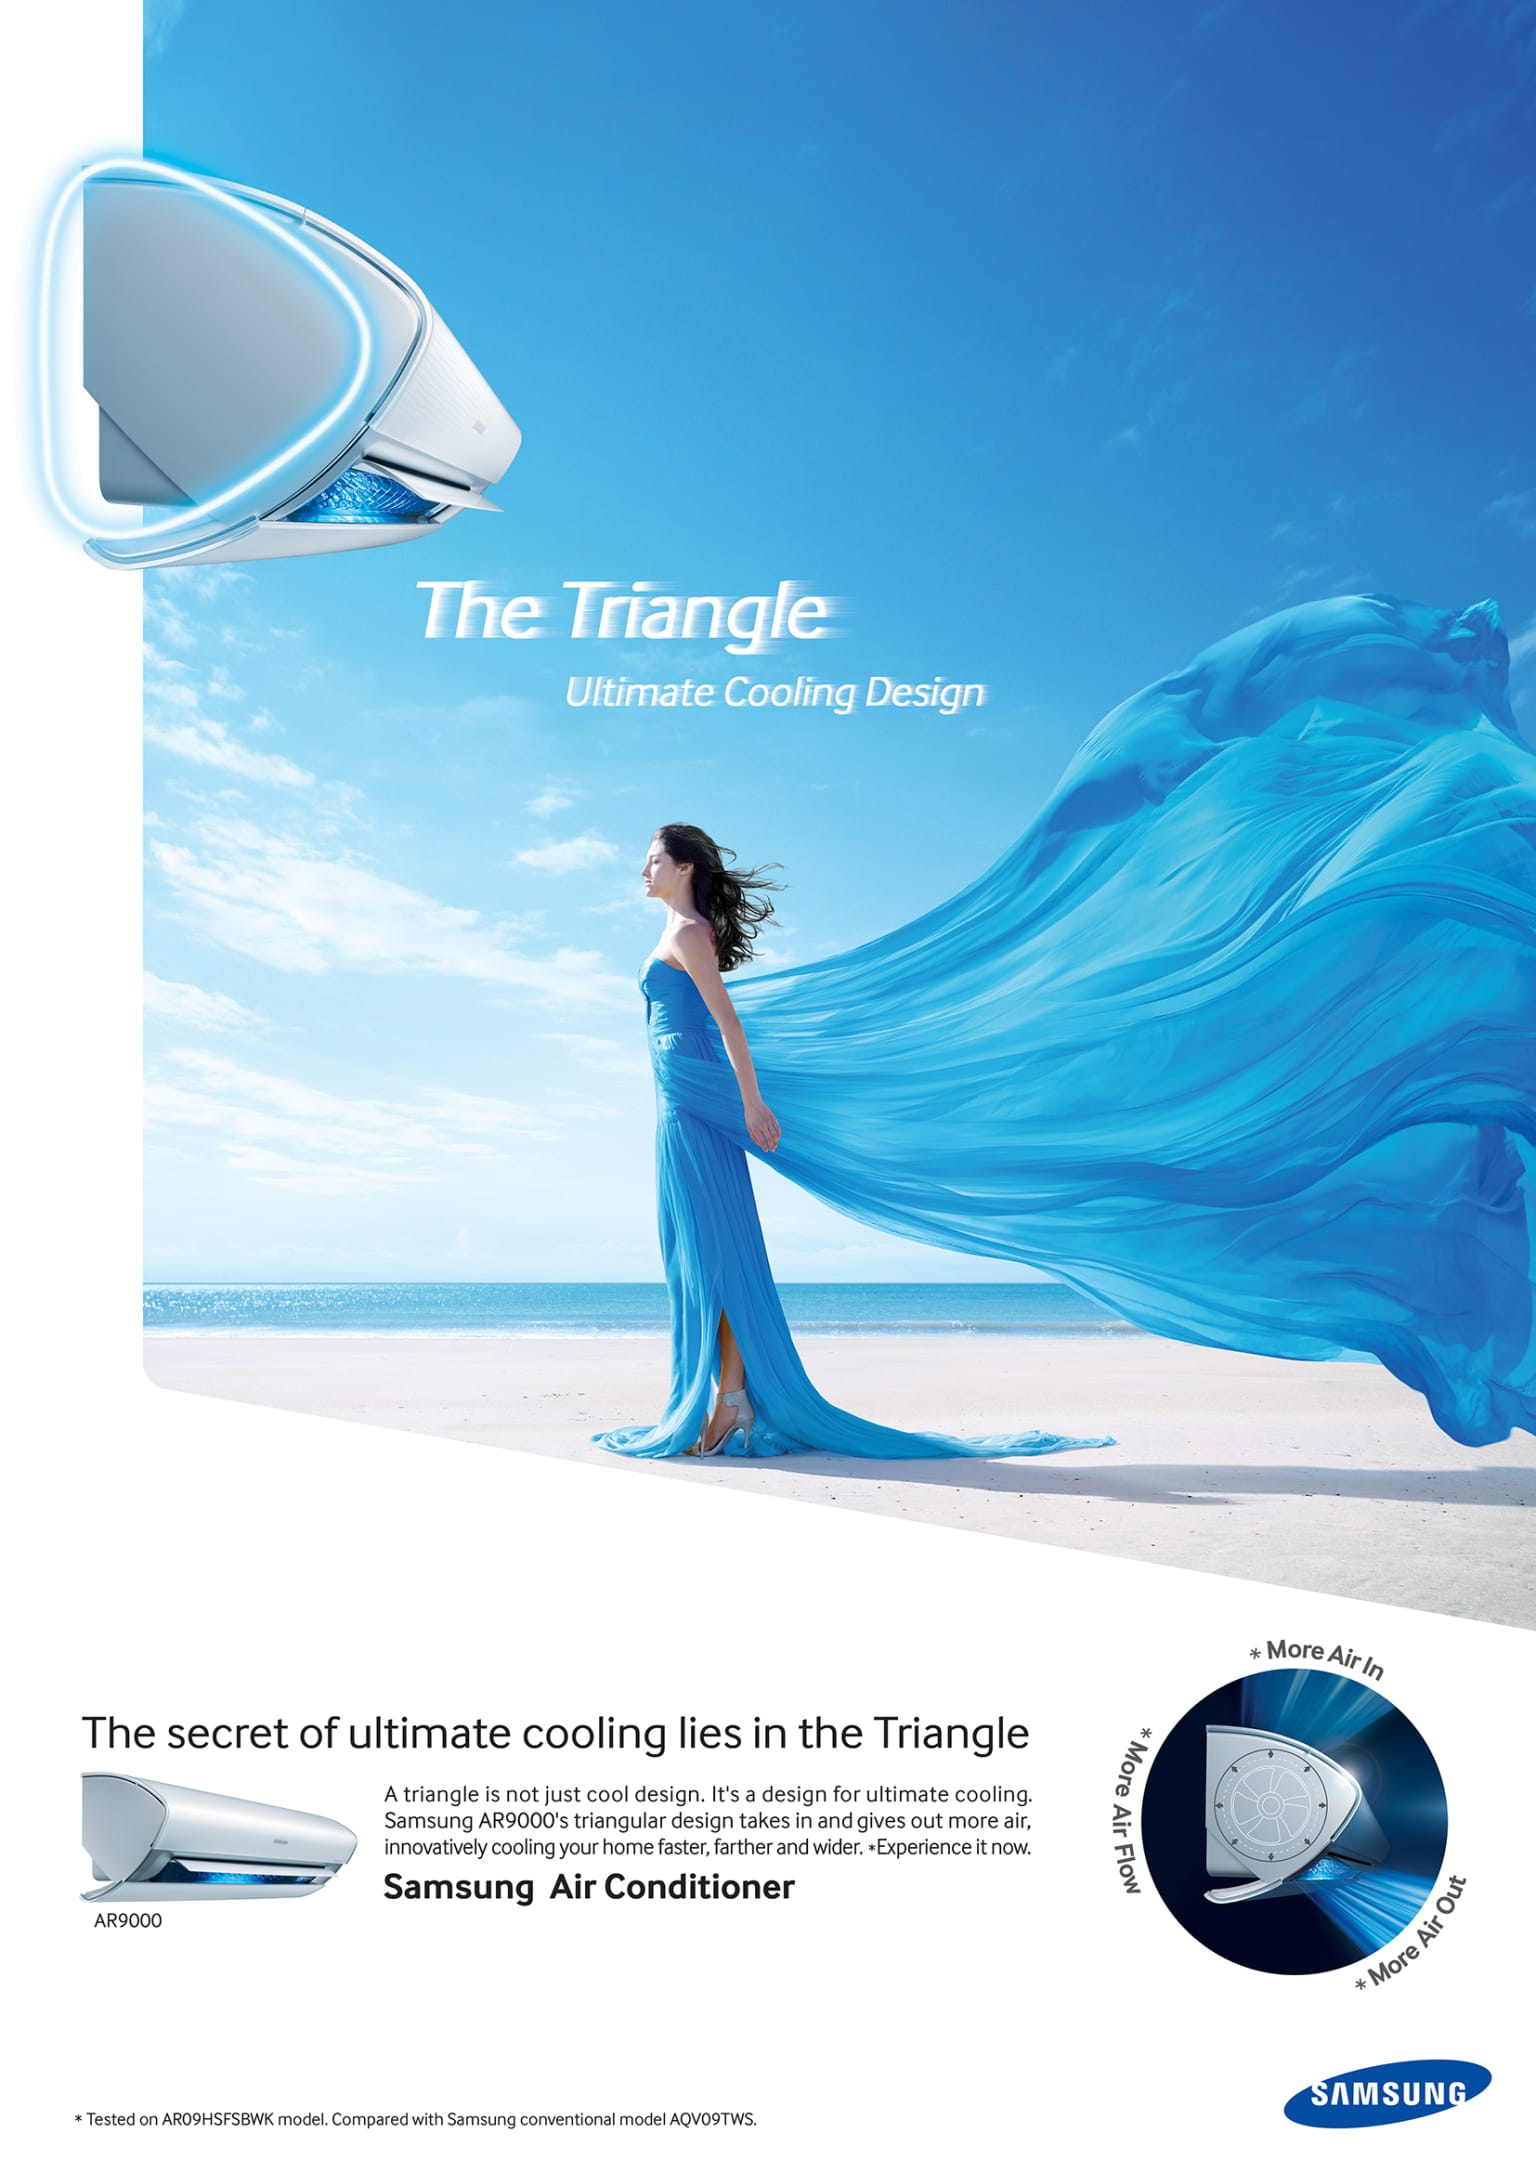 Samsung Air Conditioner - WNW